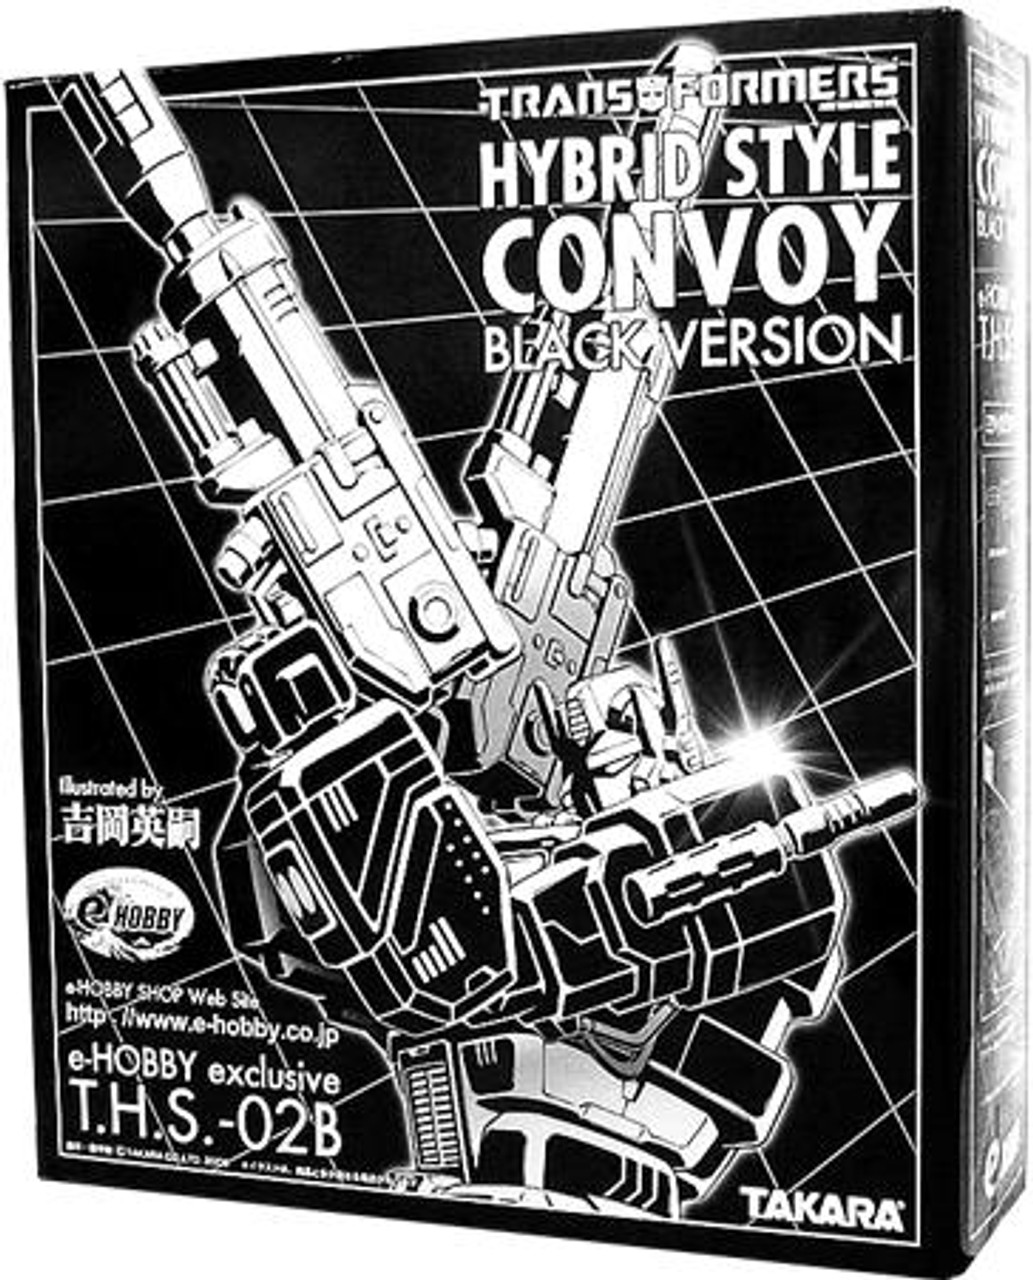 Transformers Japanese Galaxy Force Hybrid Style Convoy Exclusive Action Figure T.H.S.-02B [Black Version]